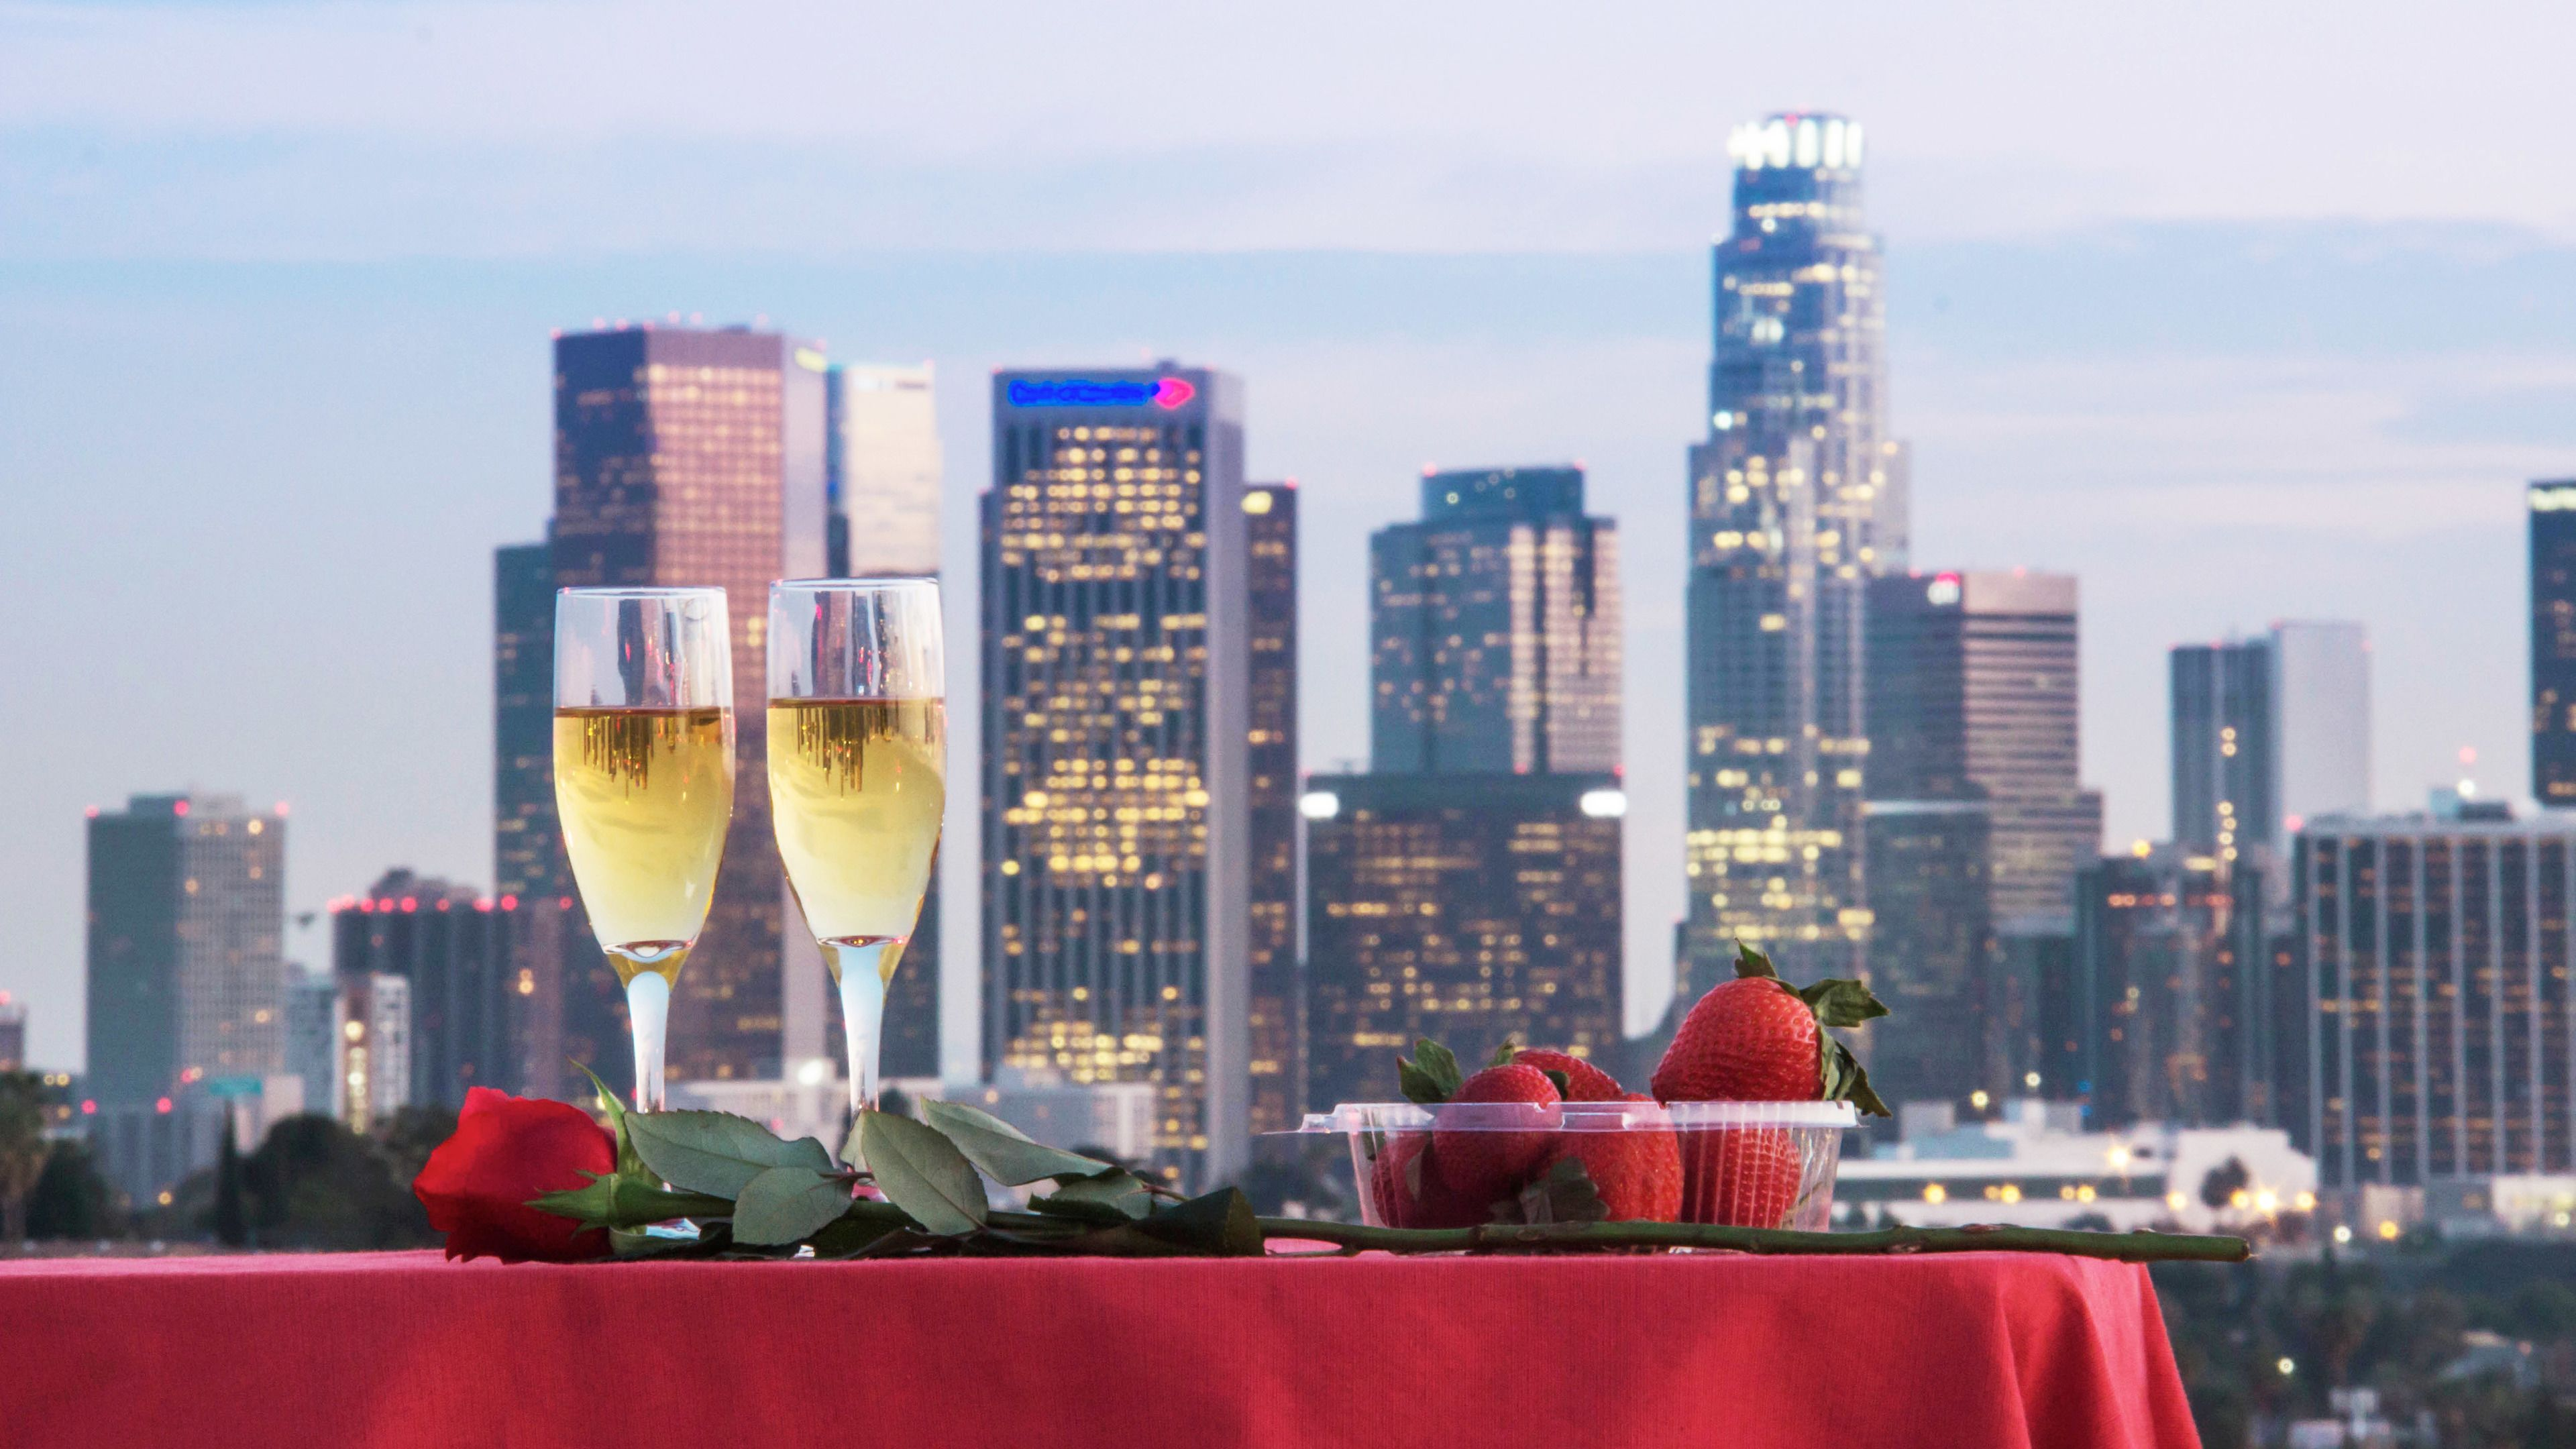 Two glasses of champagne and strawberries on a table overlooking the city in Los Angeles